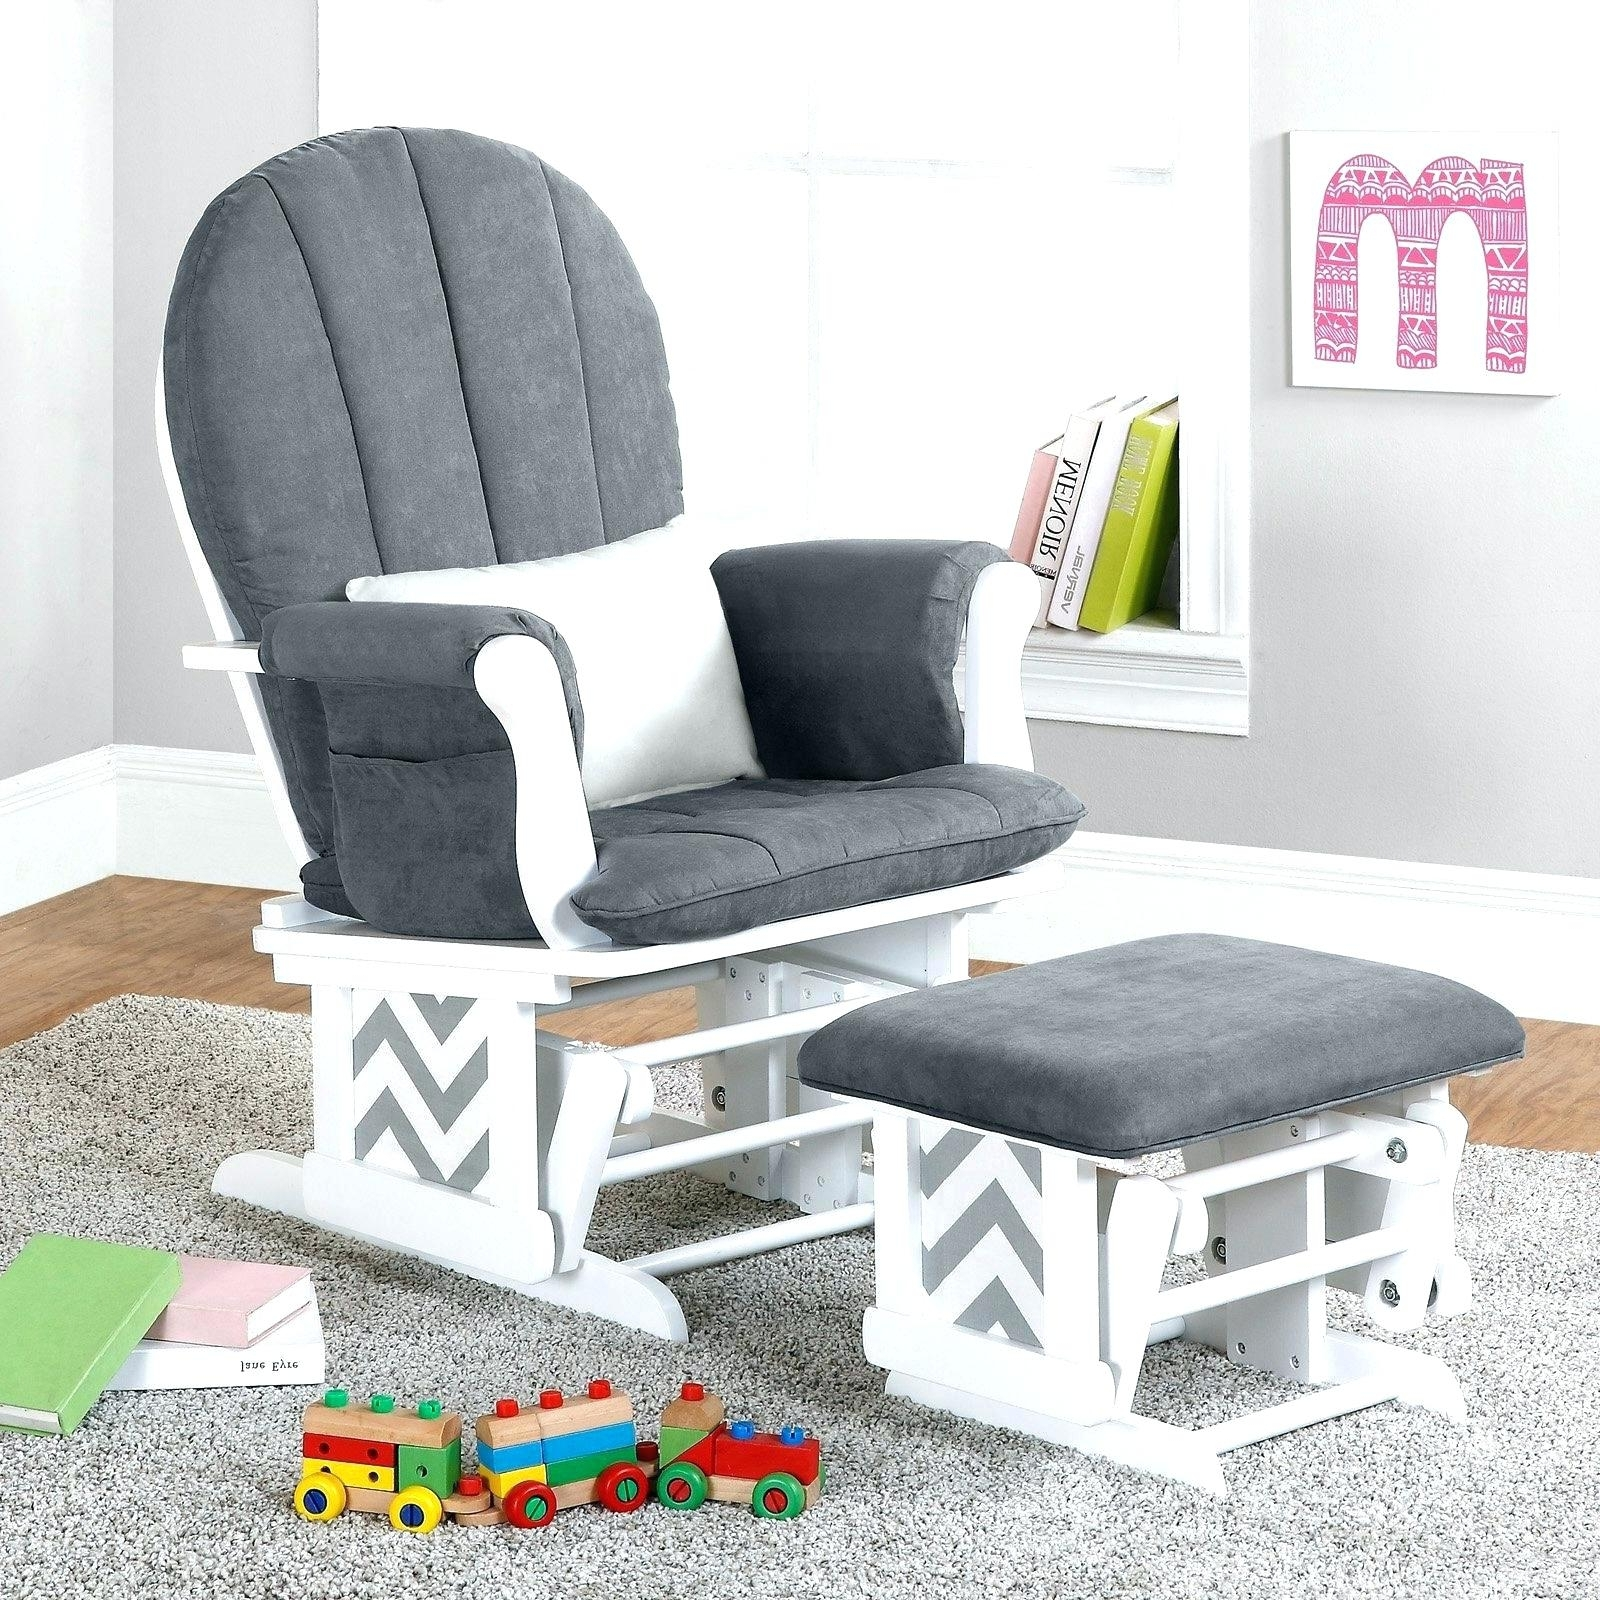 Fashionable Ottomans : Baby Room Rocker Recliner Glider Chair With Ottoman Sale Throughout Rocking Chairs For Baby Room (View 5 of 15)